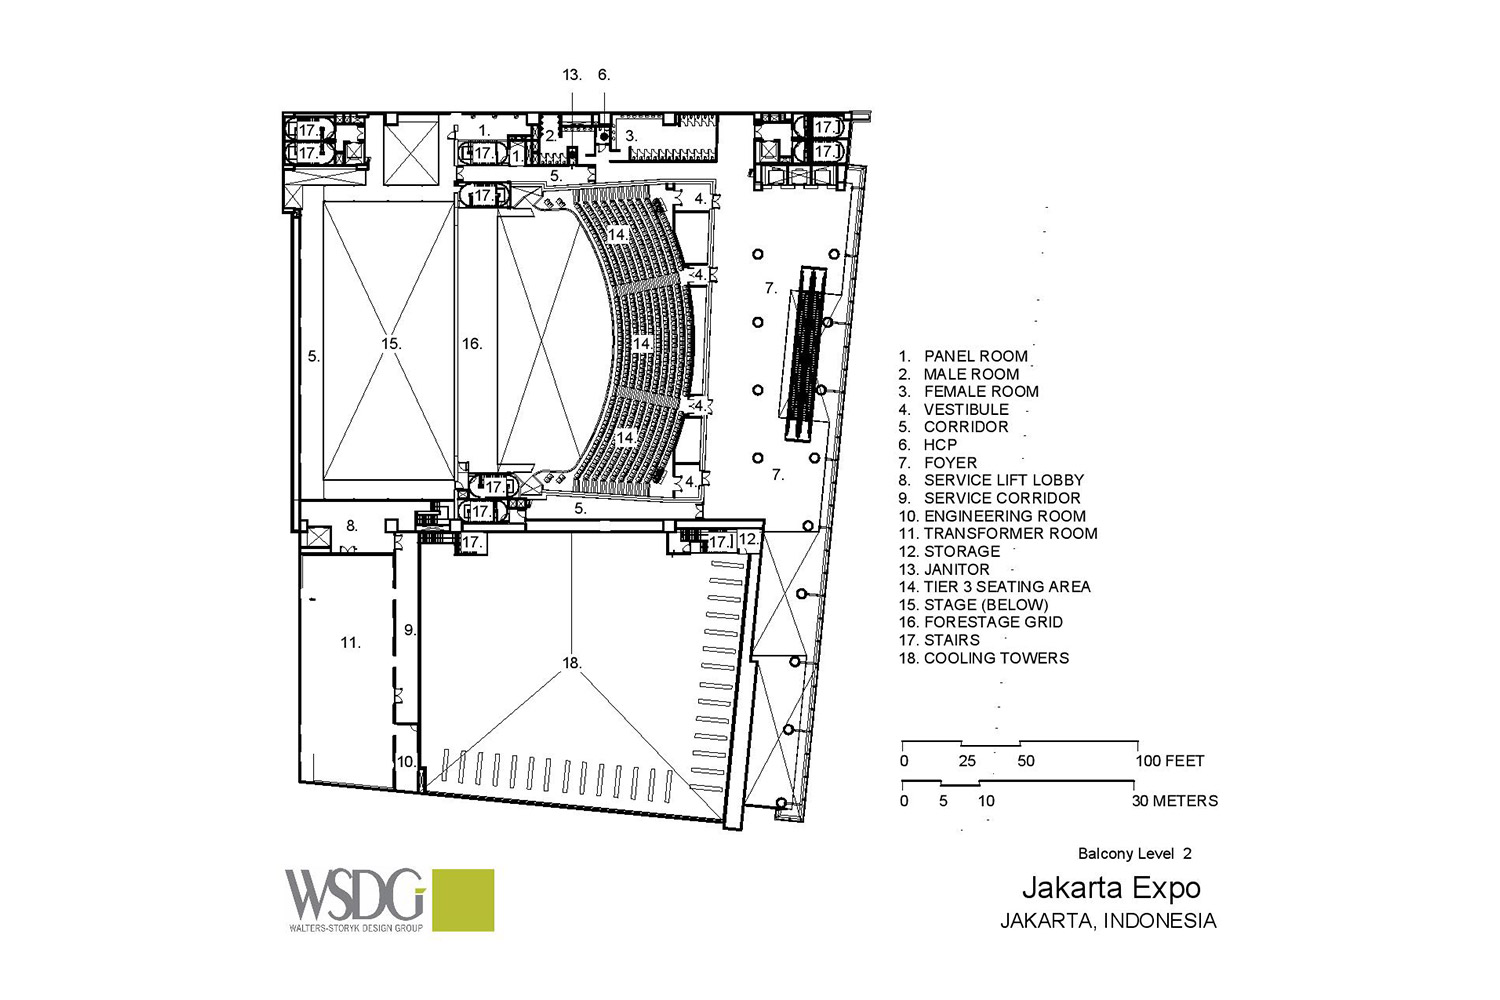 The new Convention Centre and Theatre at Jakarta International Expo (JIExpo) complex will be one of the largest and most forward thinking convention and entertainment centers in Indonesia. WSDG was called to to create an acoustic environment conducive to world-class acoustical standards throughout the complex. Presentation Drawing 4